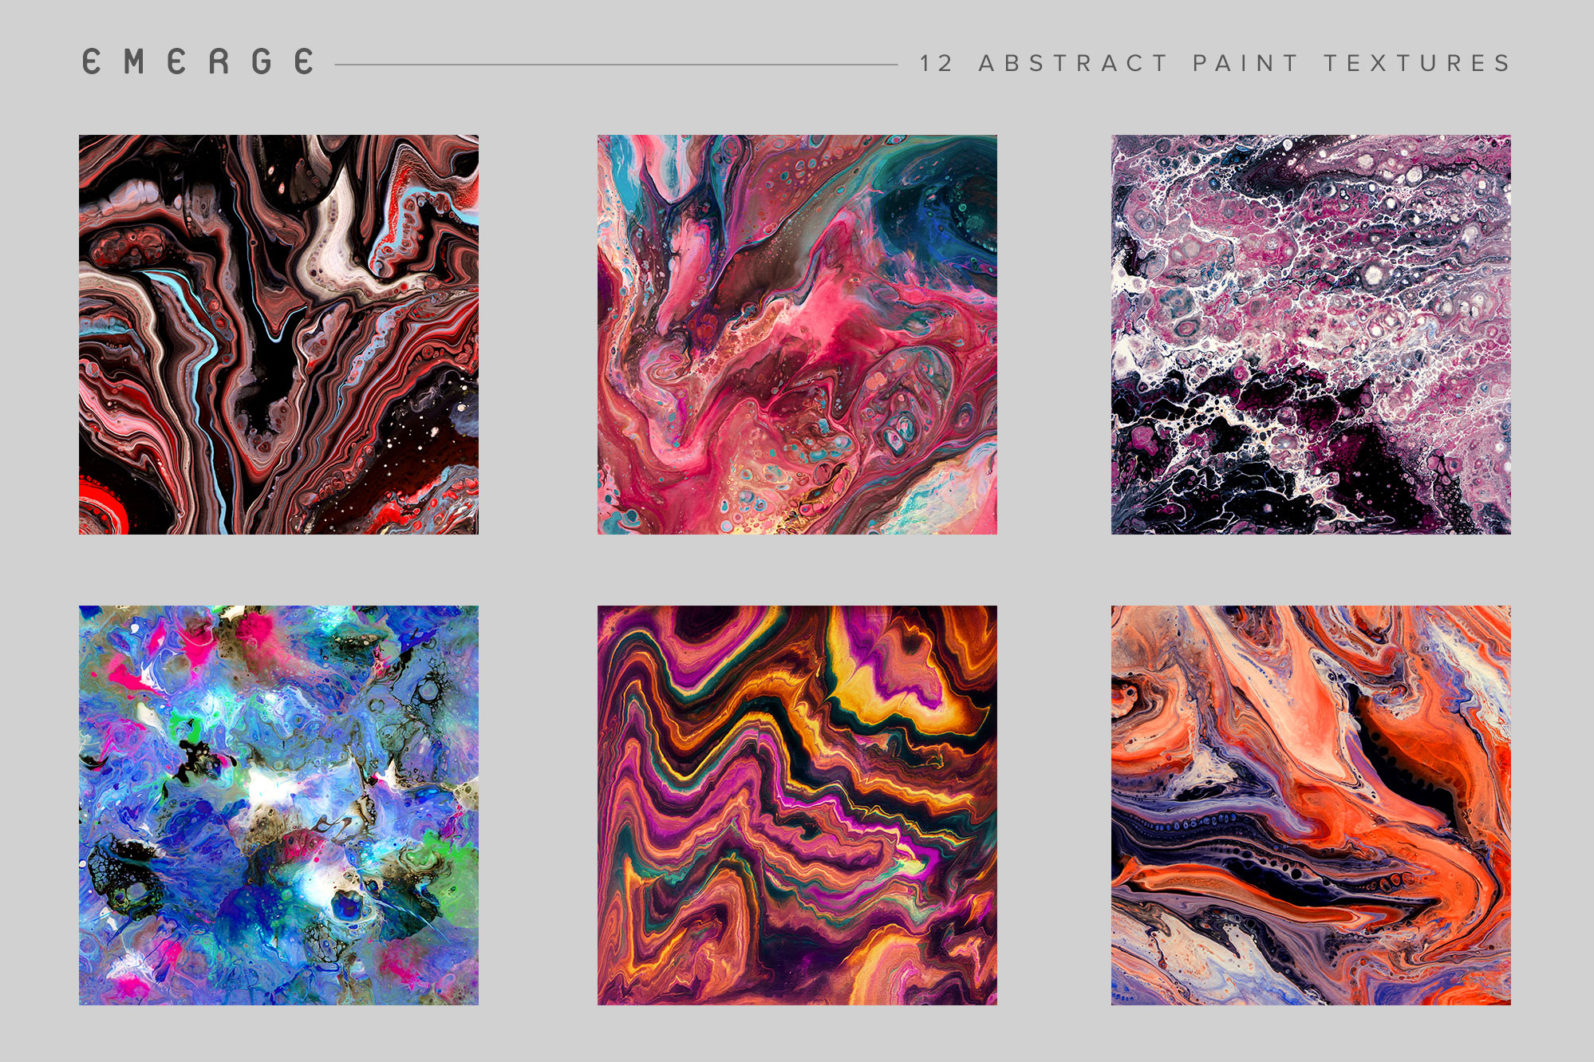 Emerge: 12 Abstract Paint Textures - 11 Emerge preview grid 01 06 -